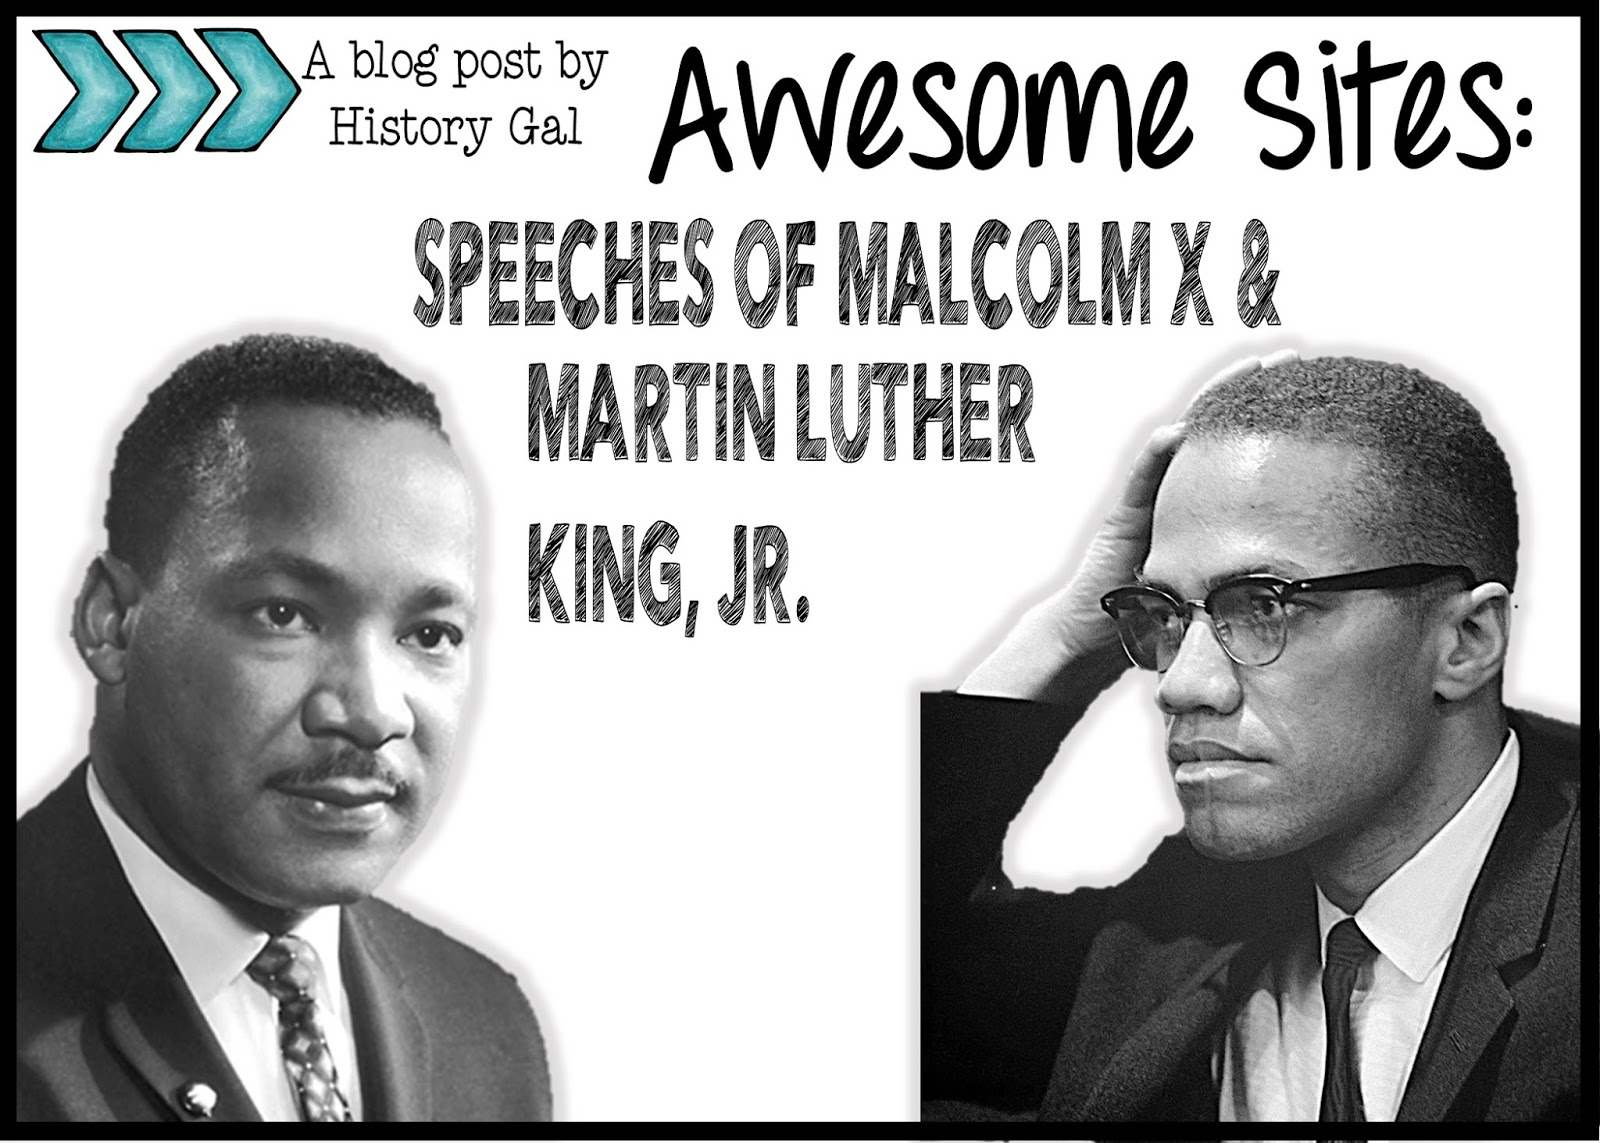 Speeches of Malcolm X and Martin Luther King, Jr. by History Gal